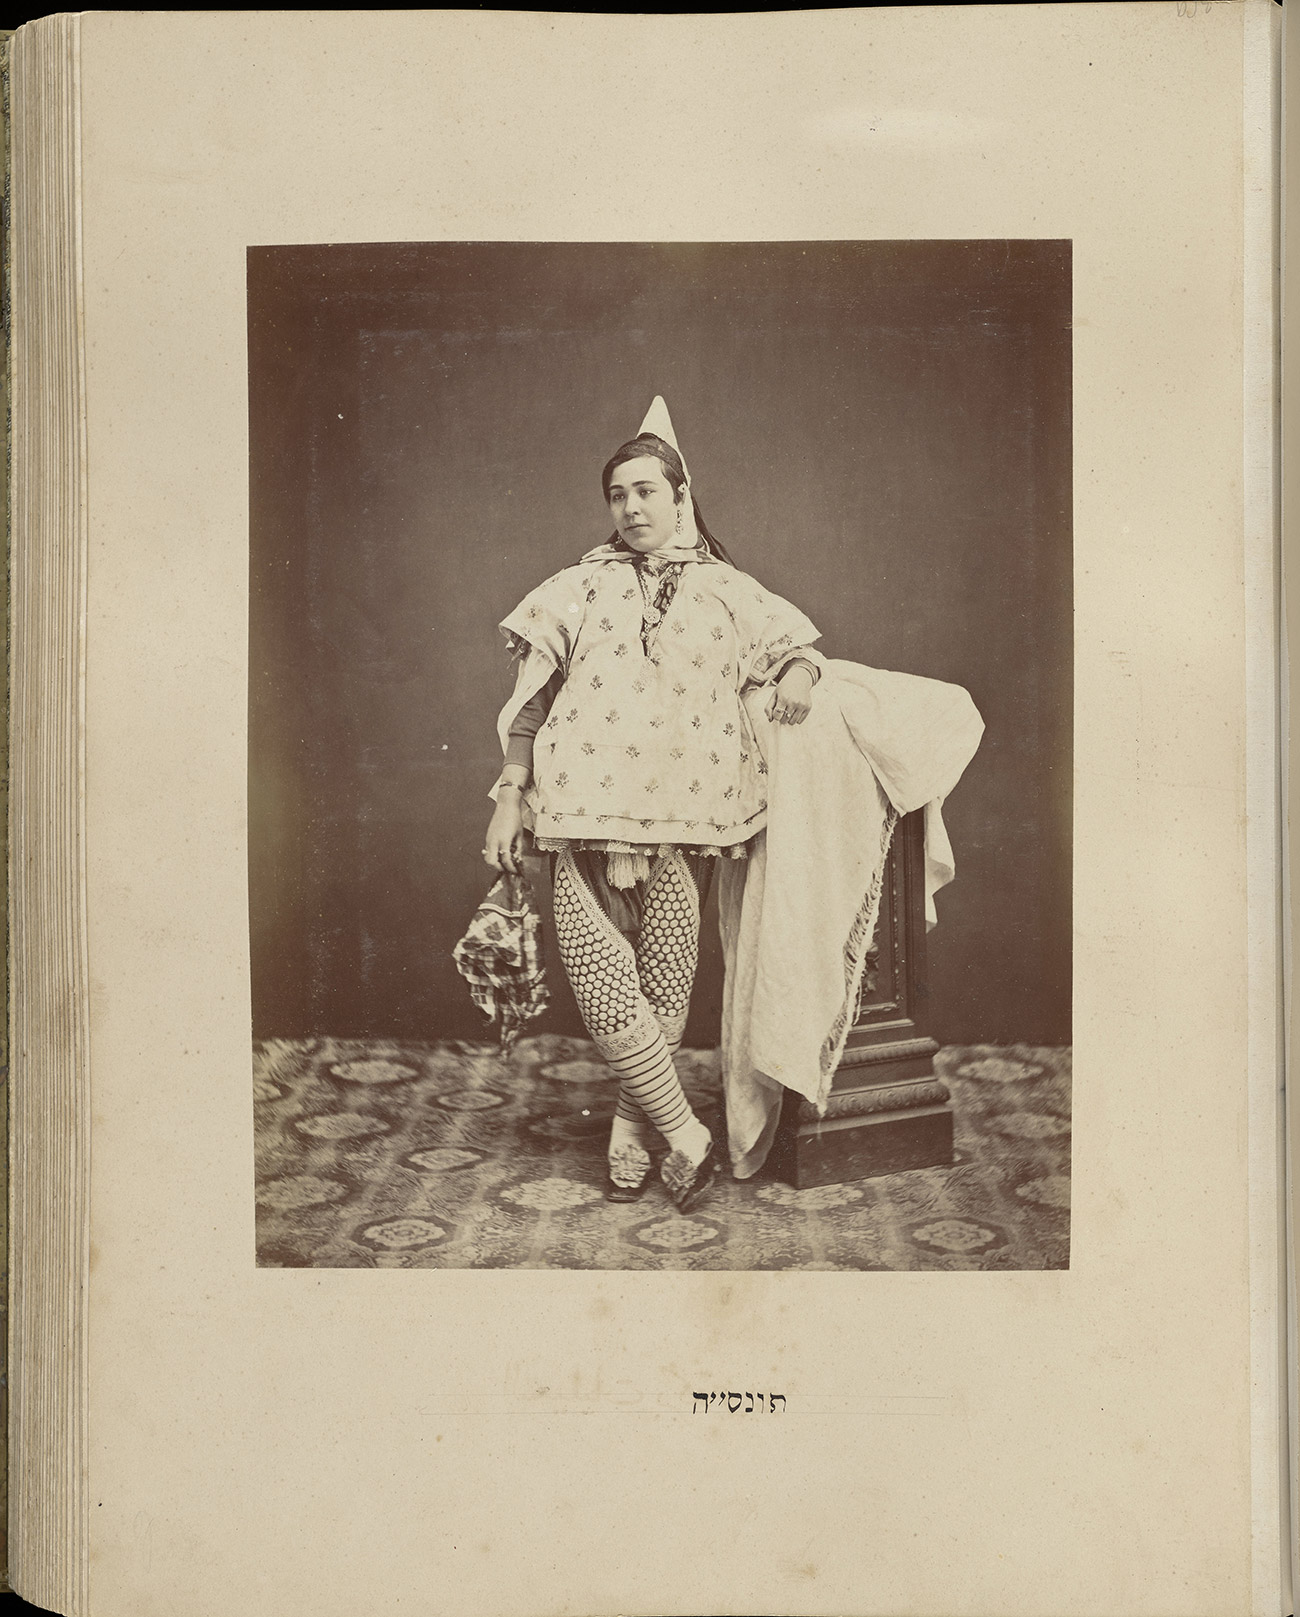 Sepia-toned historic photograph showing a standing woman in ornate leggings and a pointed cap. She looks away from the camera and has her ankles crossed